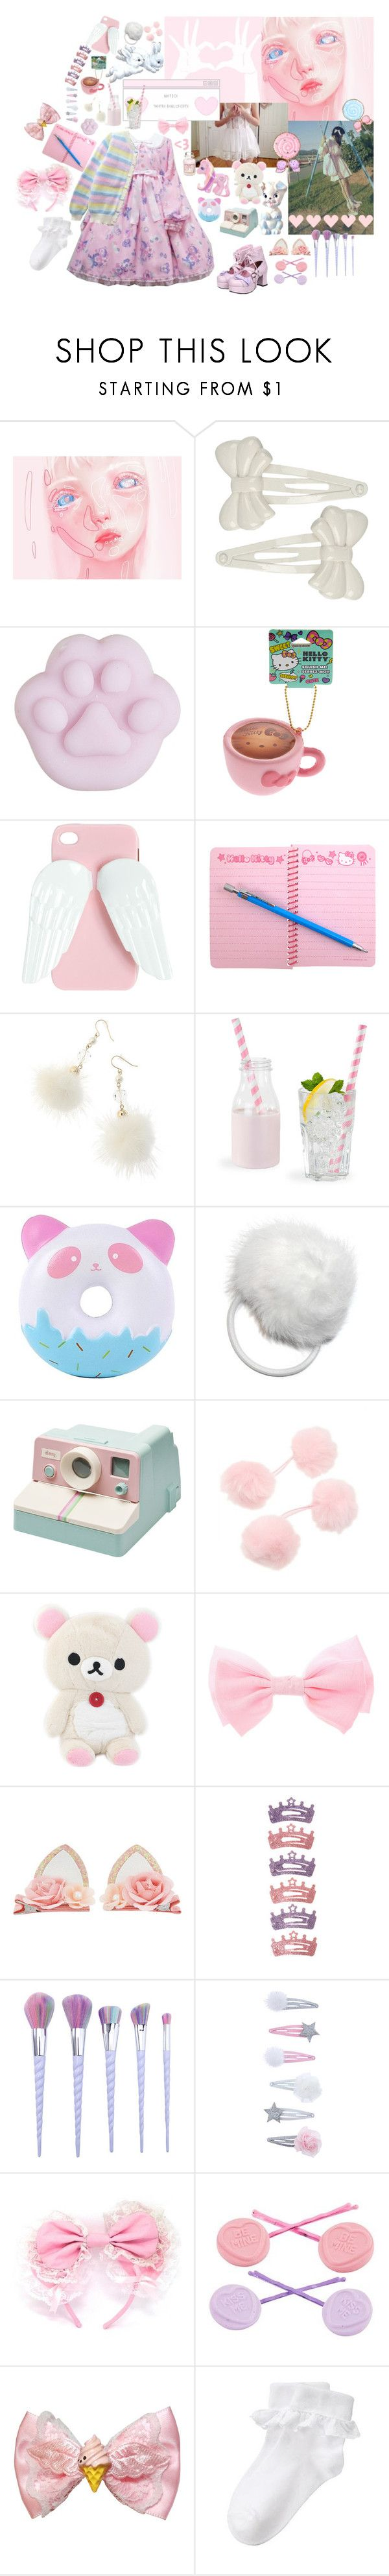 """""""🍓"""" by crimson-crow ❤ liked on Polyvore featuring Forever 21, My Little Pony, Hello Kitty, Wet Seal, Monsoon and Accessorize"""